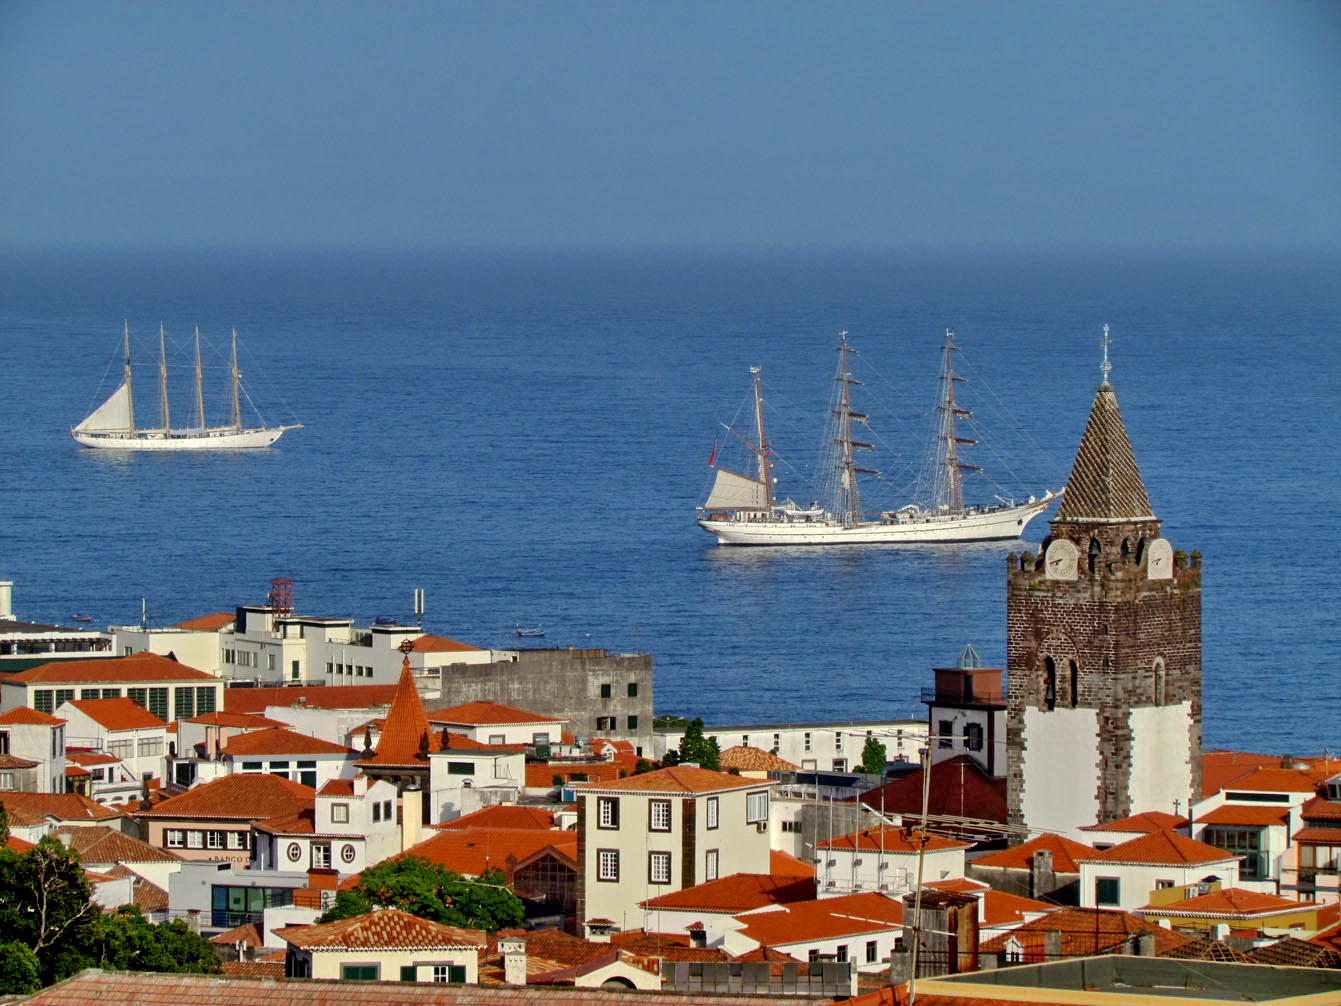 Creoula and Sagres, a rare moment in Funchal